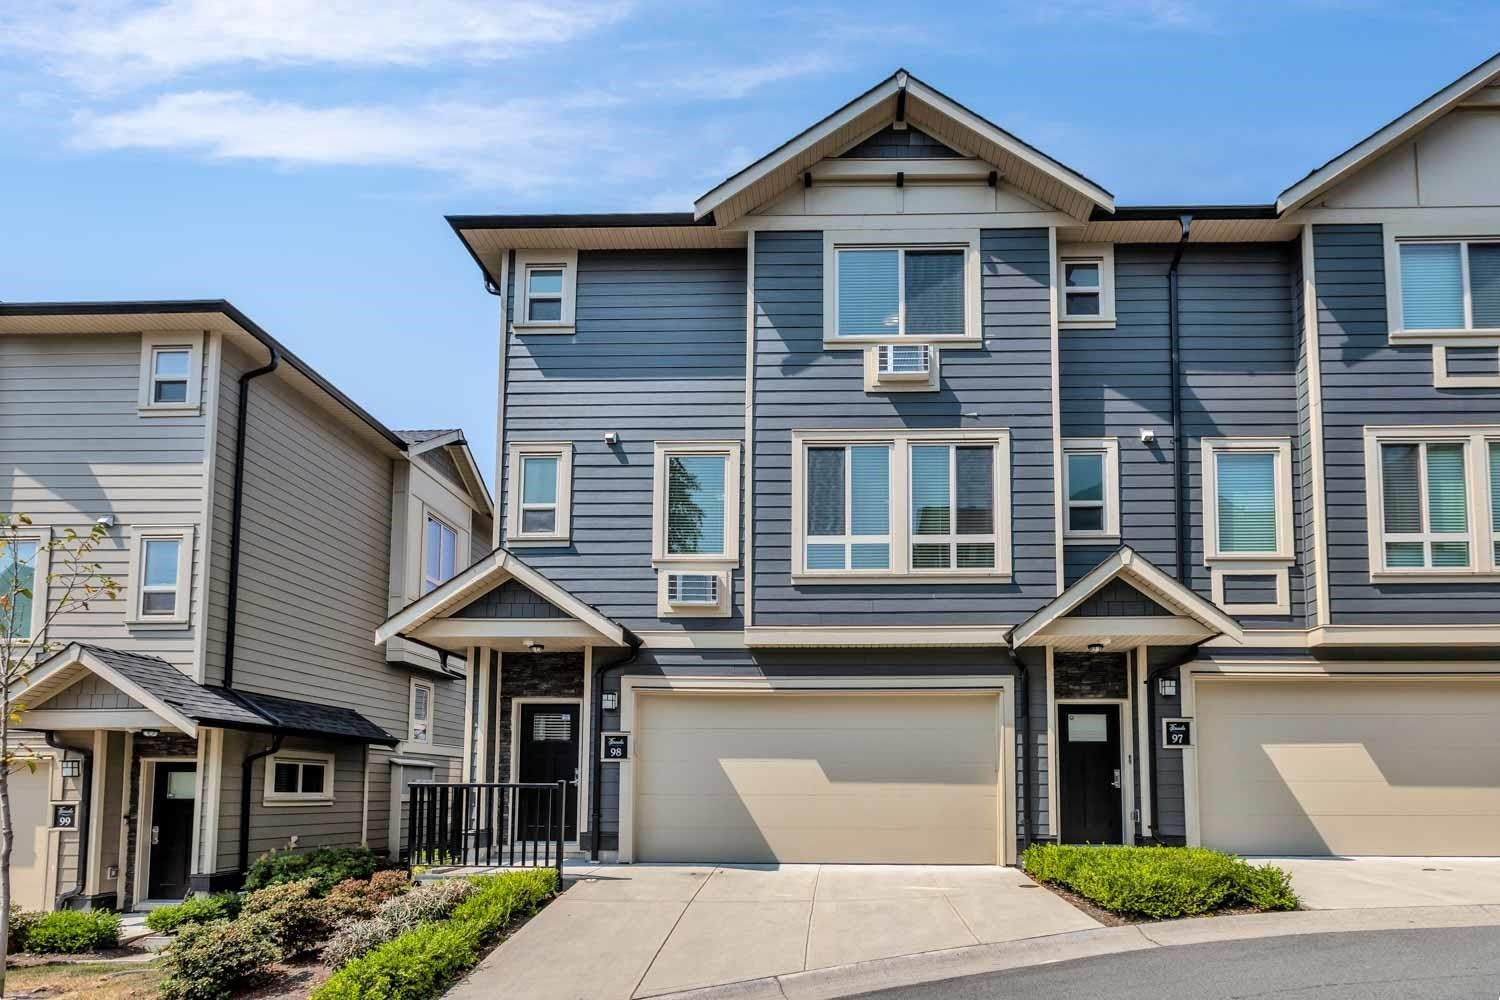 Main Photo: 98 19913 70 Avenue in Langley: Willoughby Heights Townhouse for sale : MLS®# R2606437